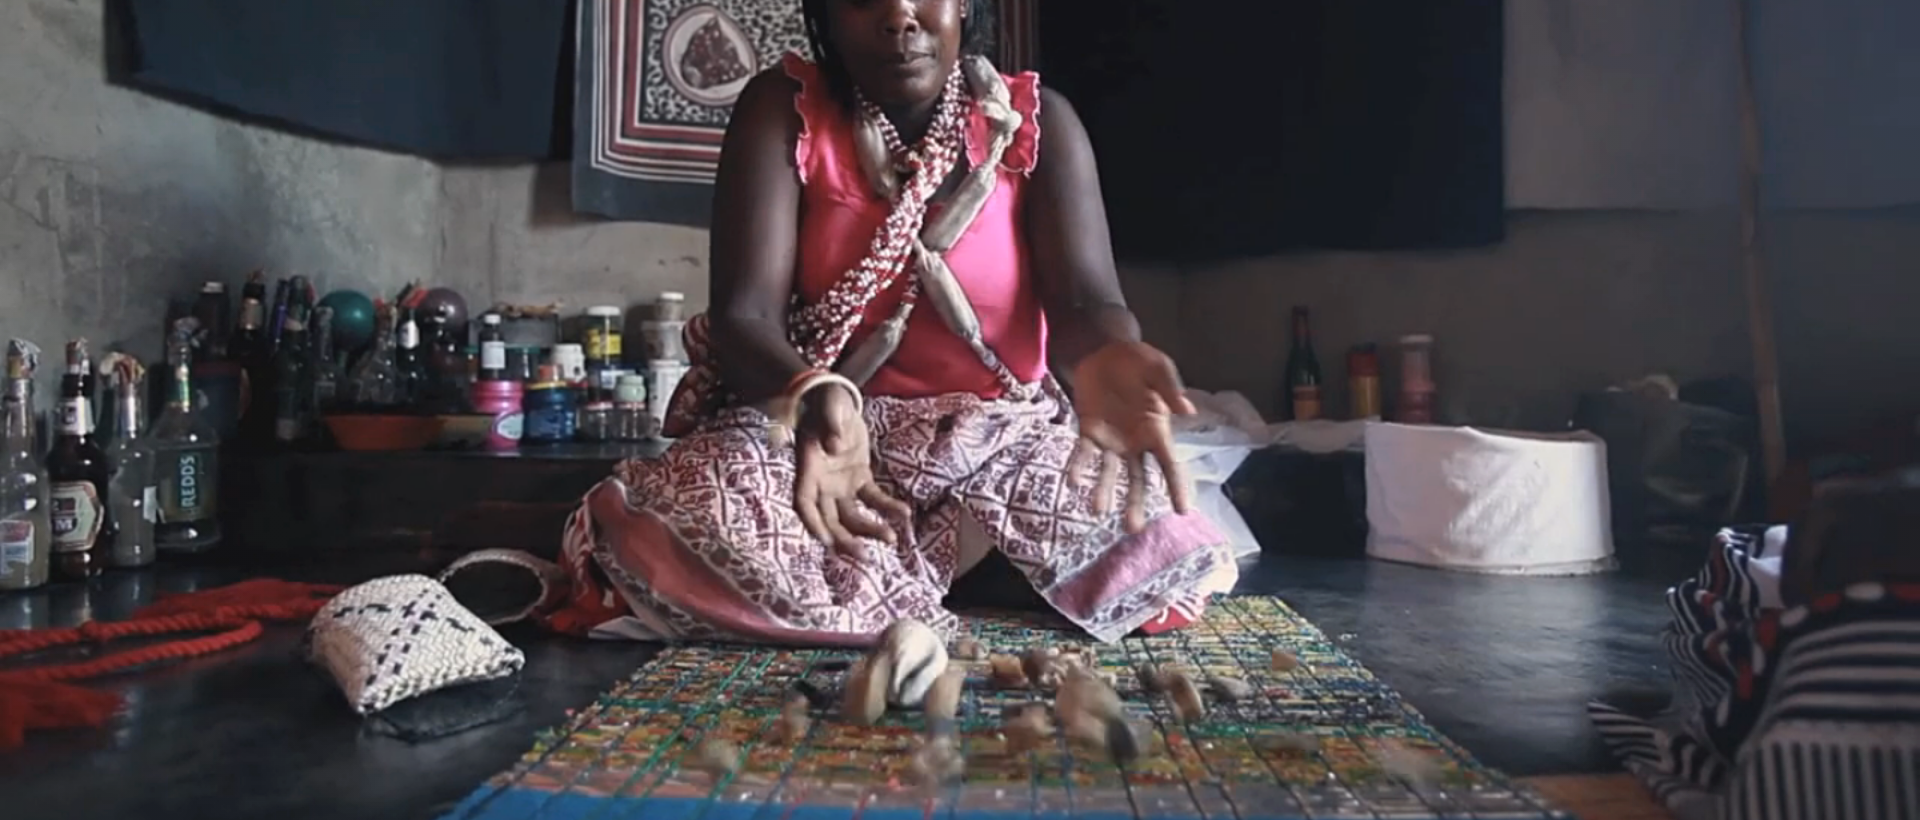 Ancestral Worship - A Sangoma consulting the bones